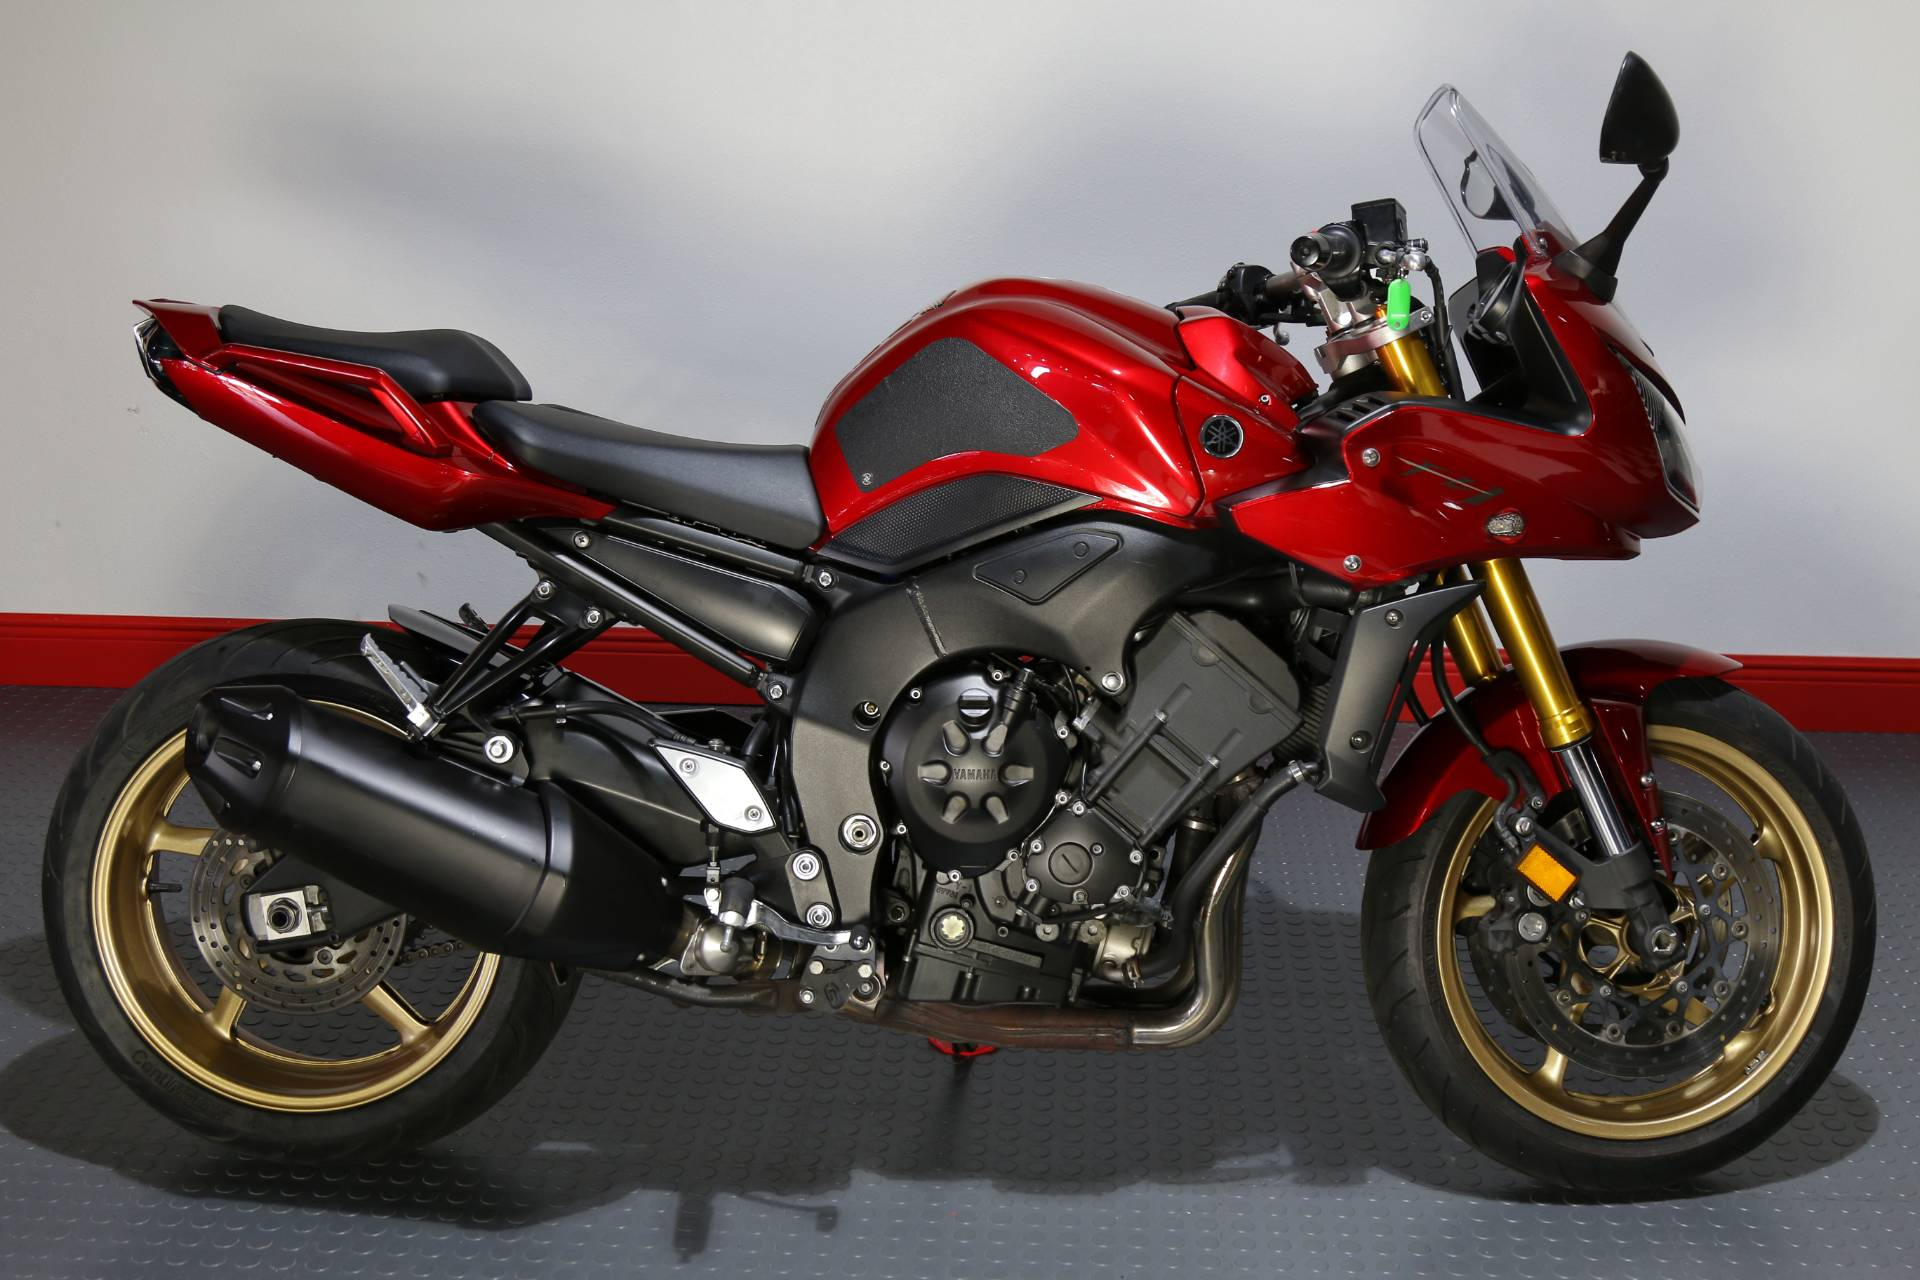 Used 2010 Yamaha FZ1 Motorcycles in Pinellas Park, FL